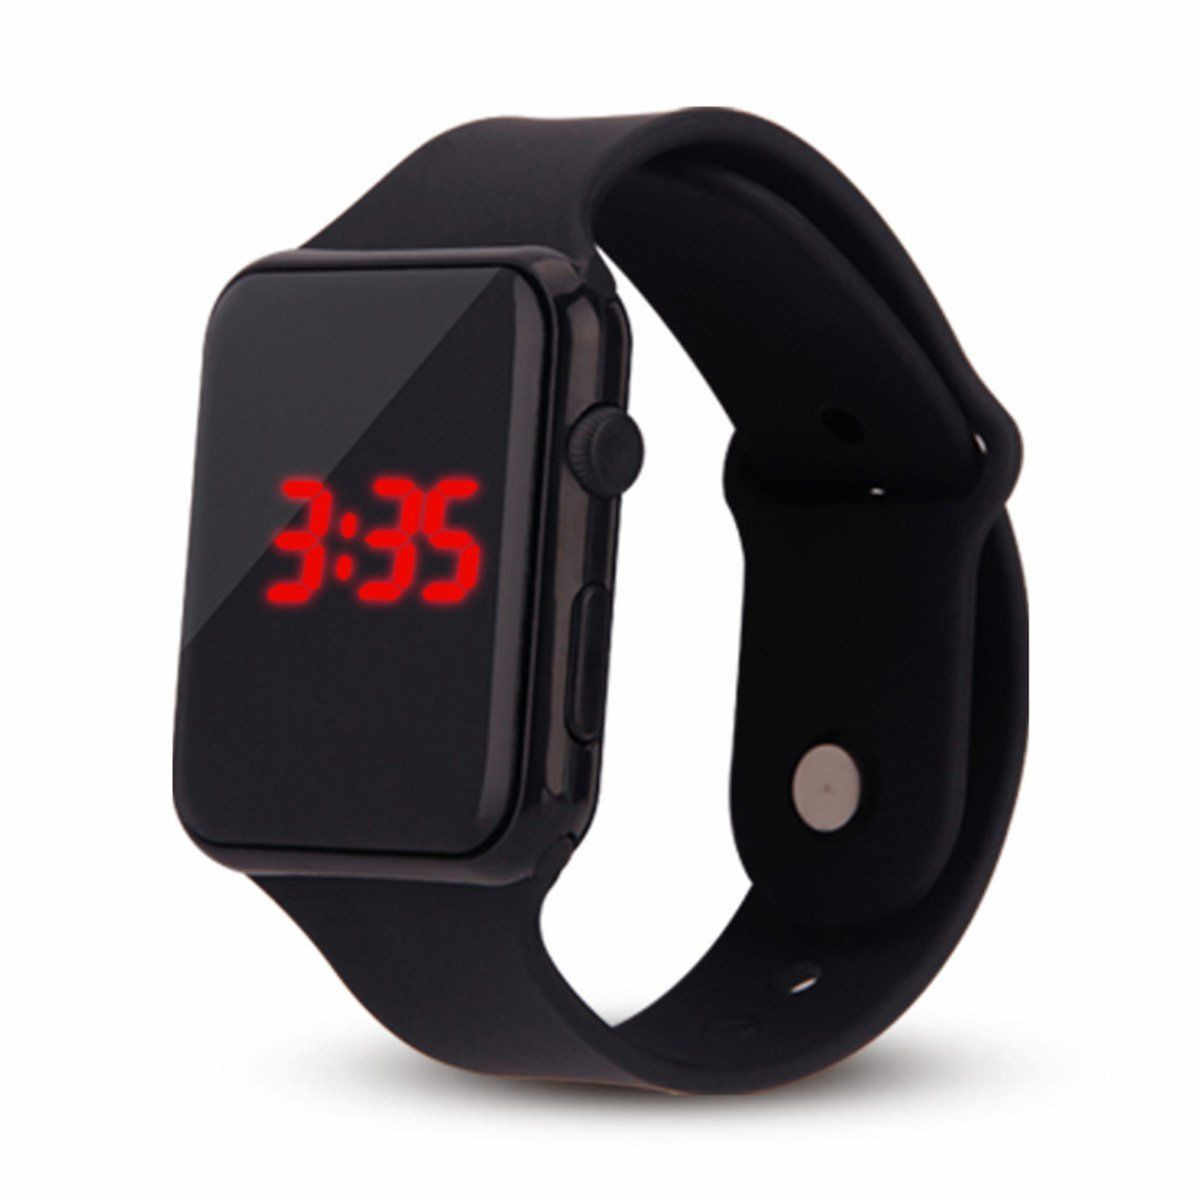 2019 New Sport Casual Watches Men Women Led Silicone Watch Lovely Digital Children Sports Wristwatch Clock bayan kol saati